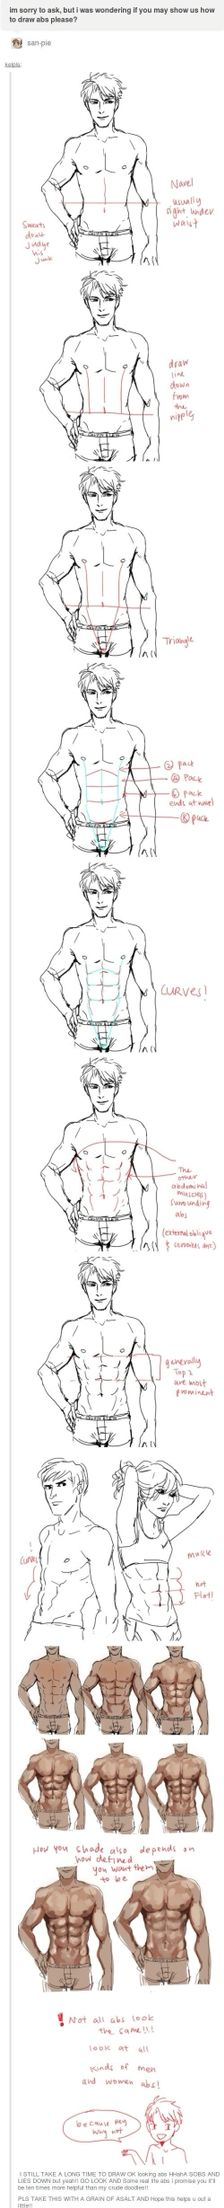 How to draw and color abs. -- Drawing tools, inspiration, creativity, tutorial, step by step, muscles, handsome and attractive man, hot